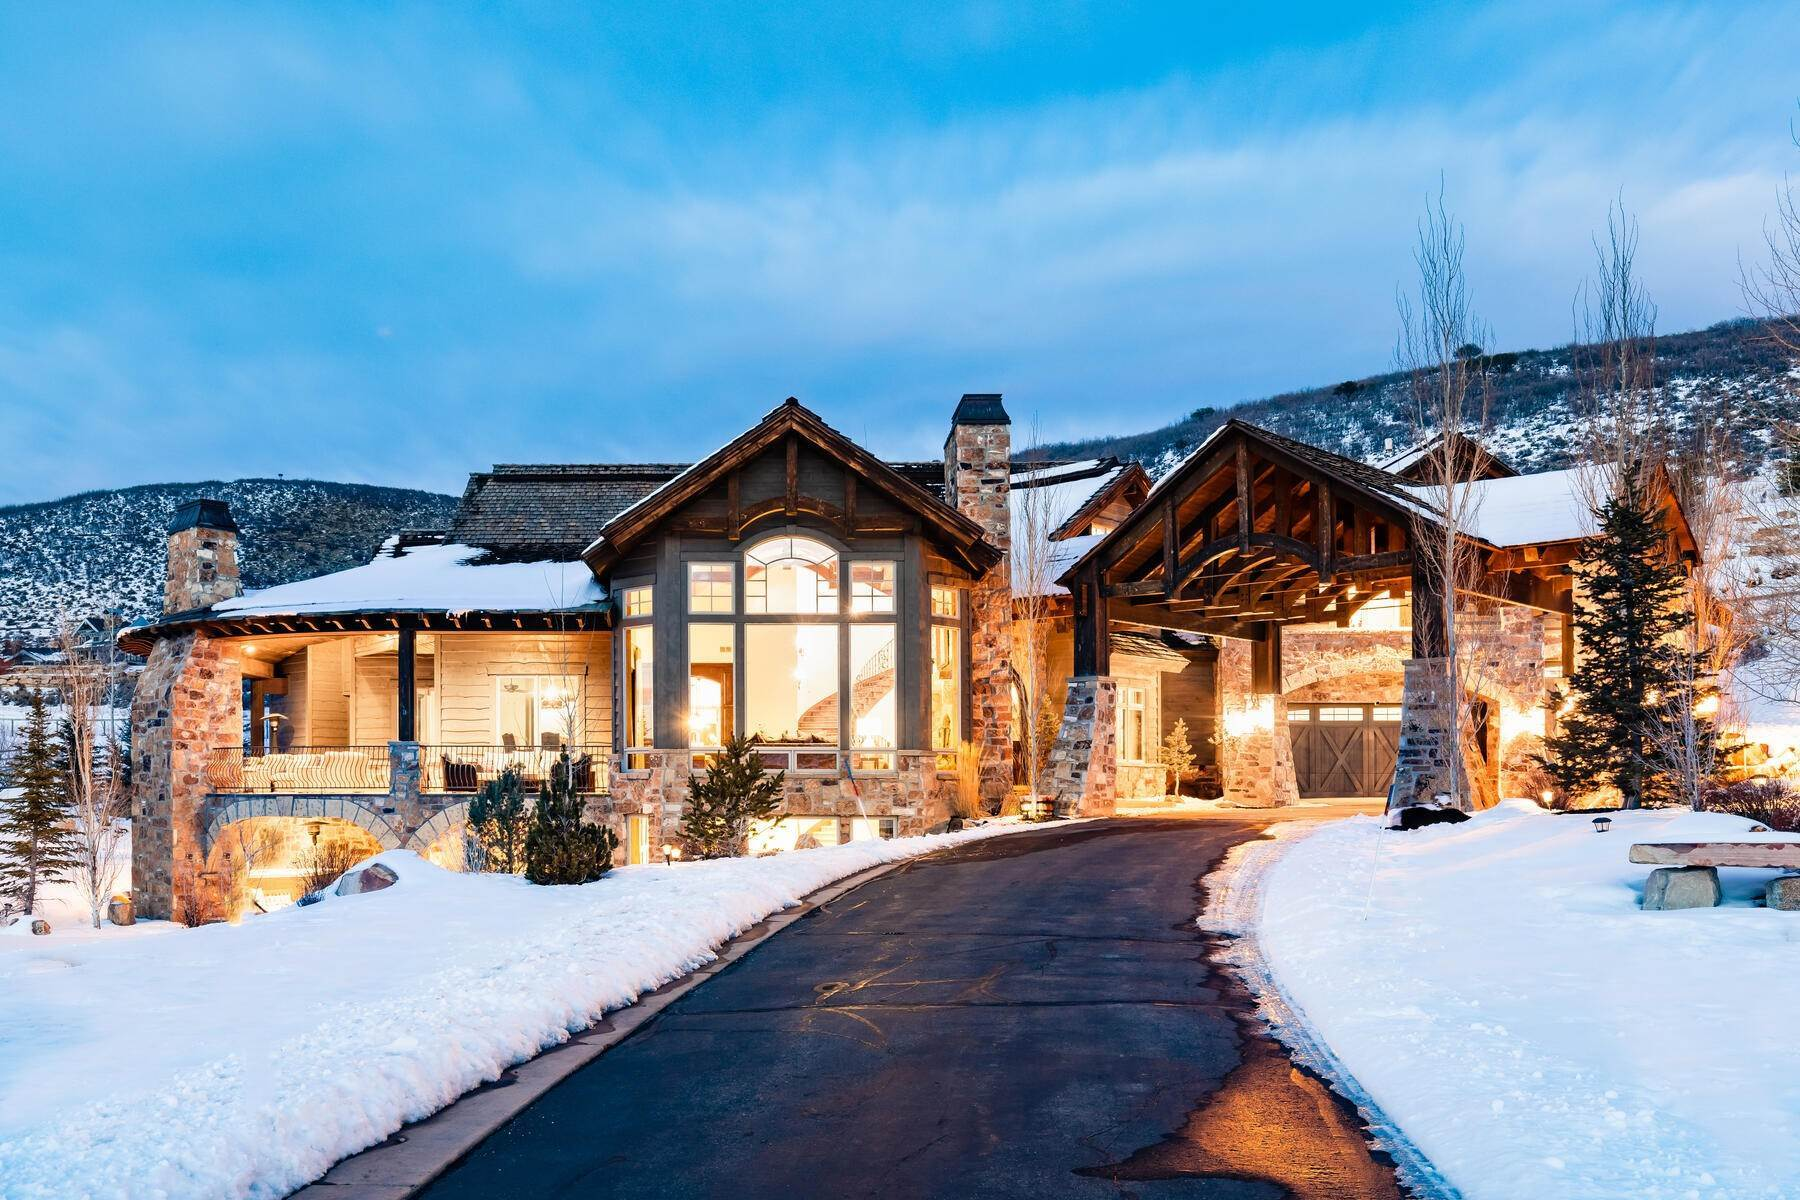 Property for Sale at Rare Ranch Creek Estates Home Boasts over 3 Acres with Unparalleled Views 4400 N Ranch Creek Ln Park City, Utah 84098 United States